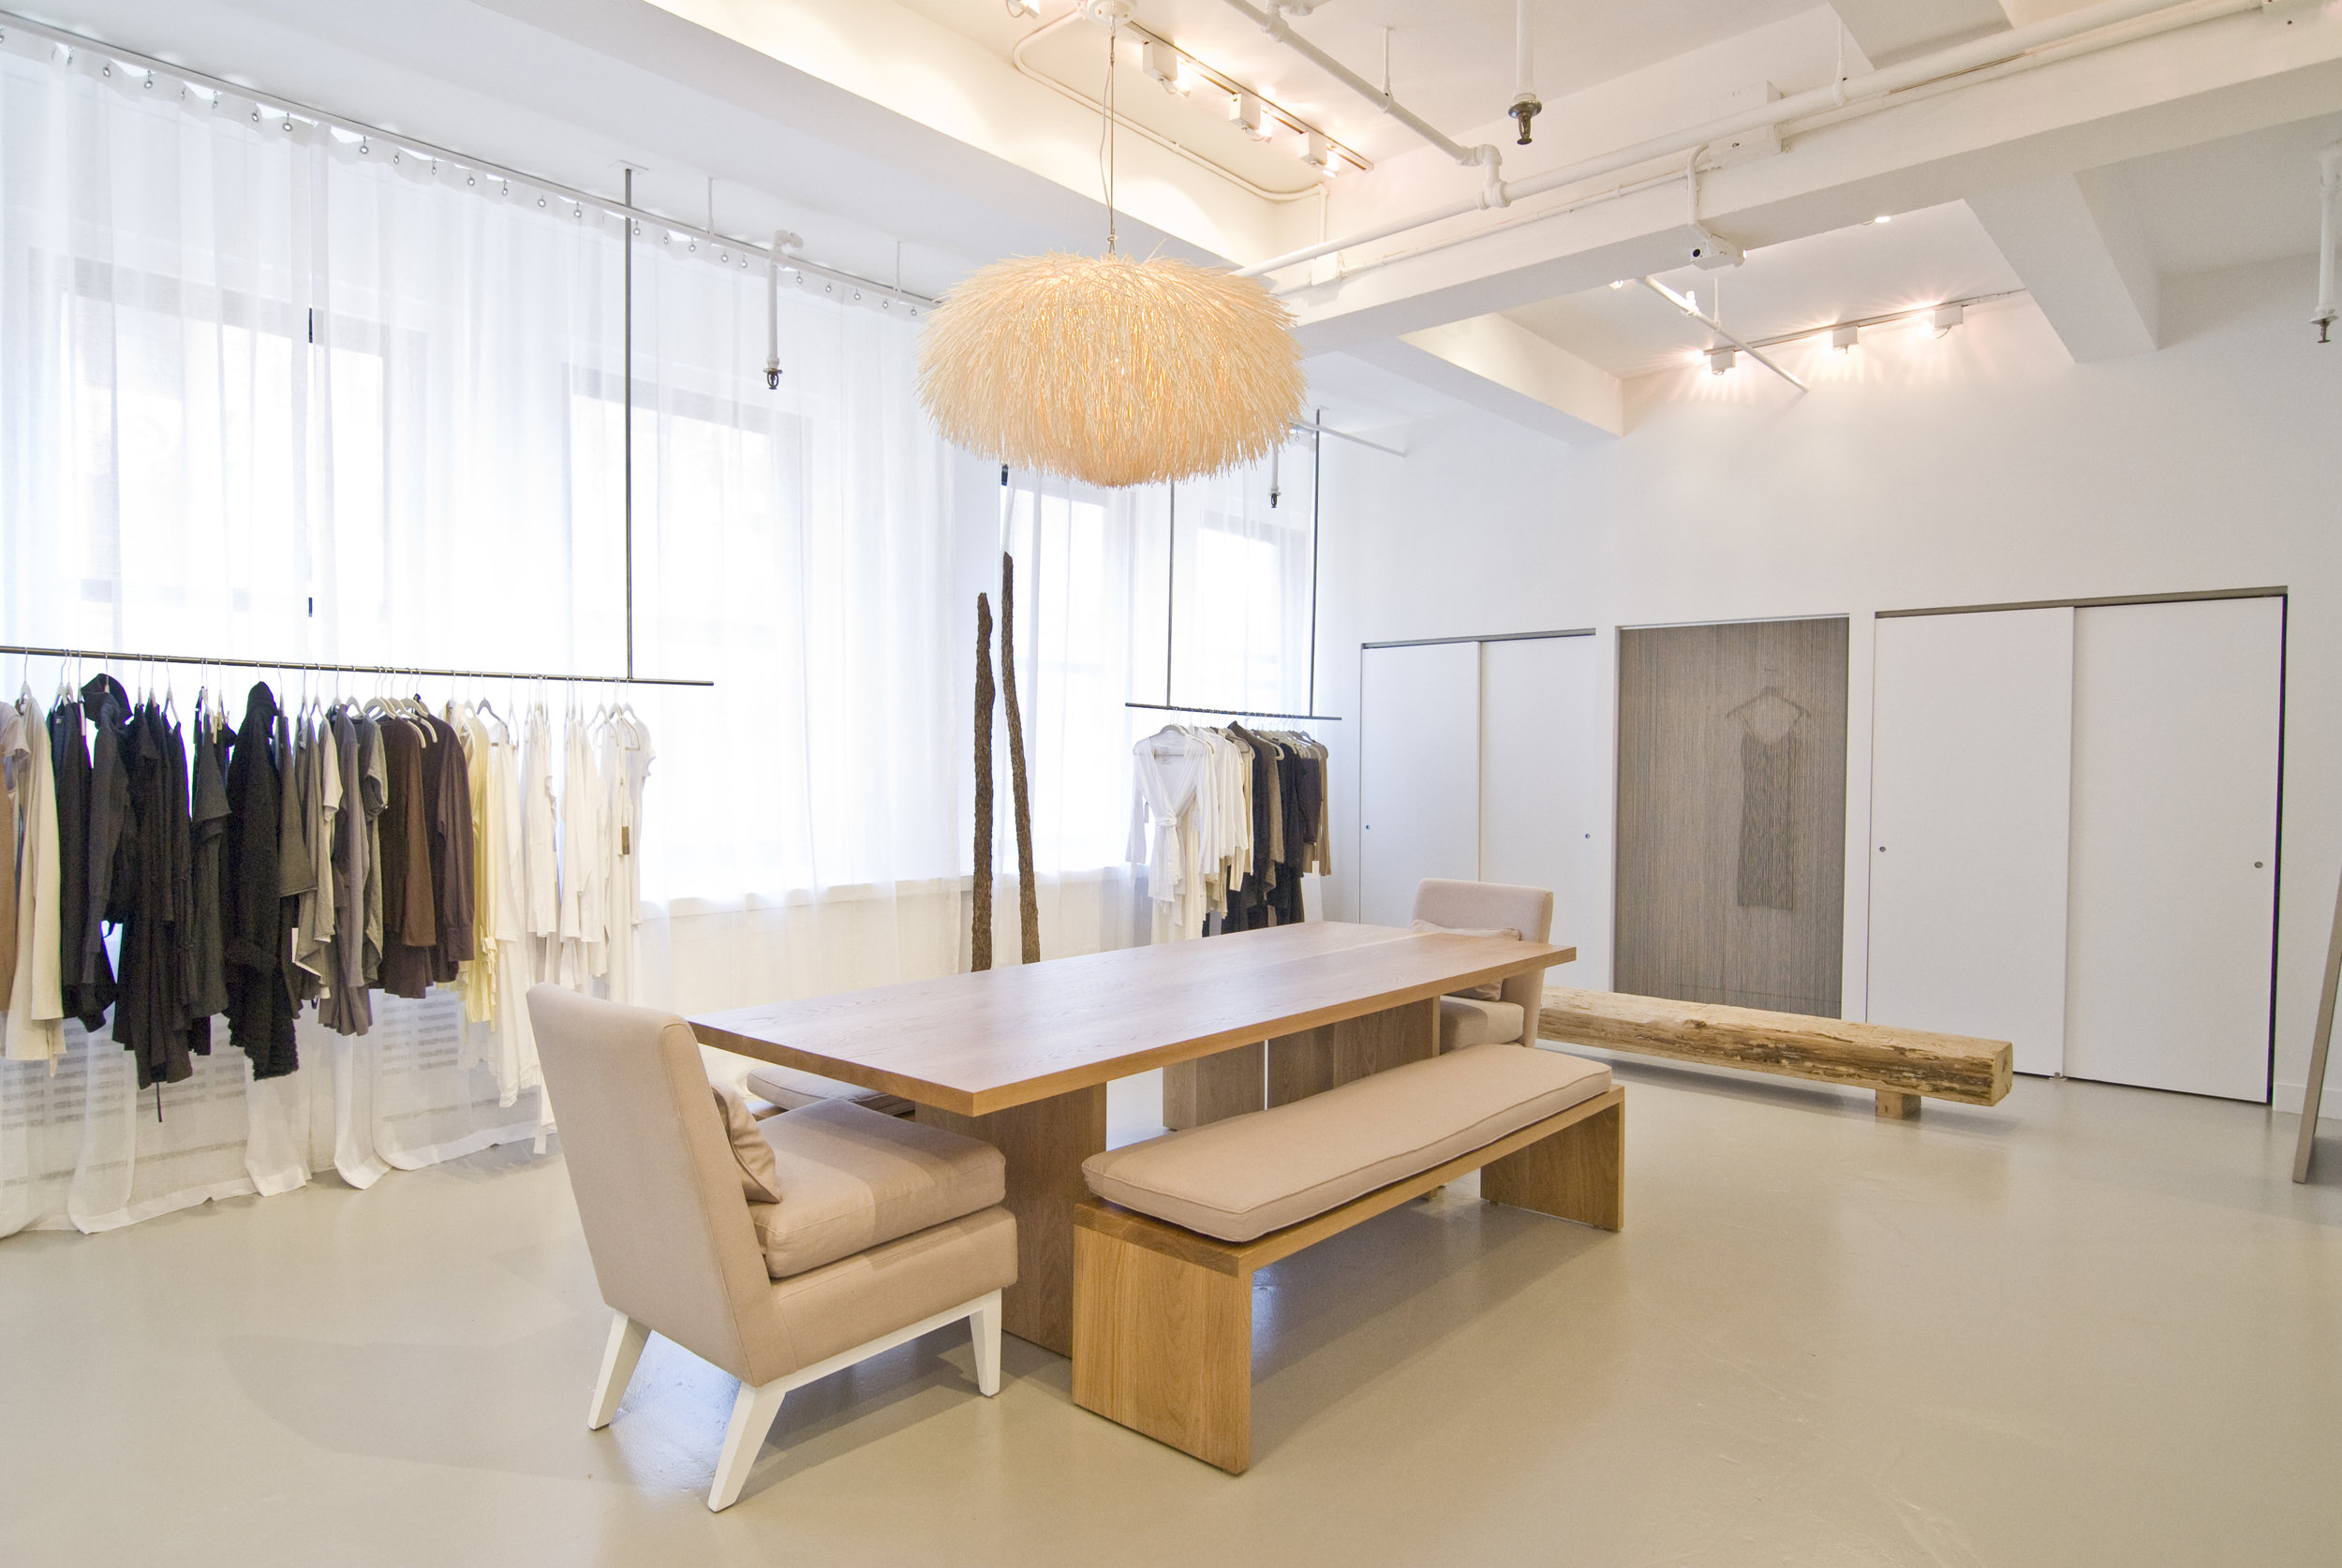 White Oak Table for Donna Karan Urban Zen Design Office by Sentient Furniture